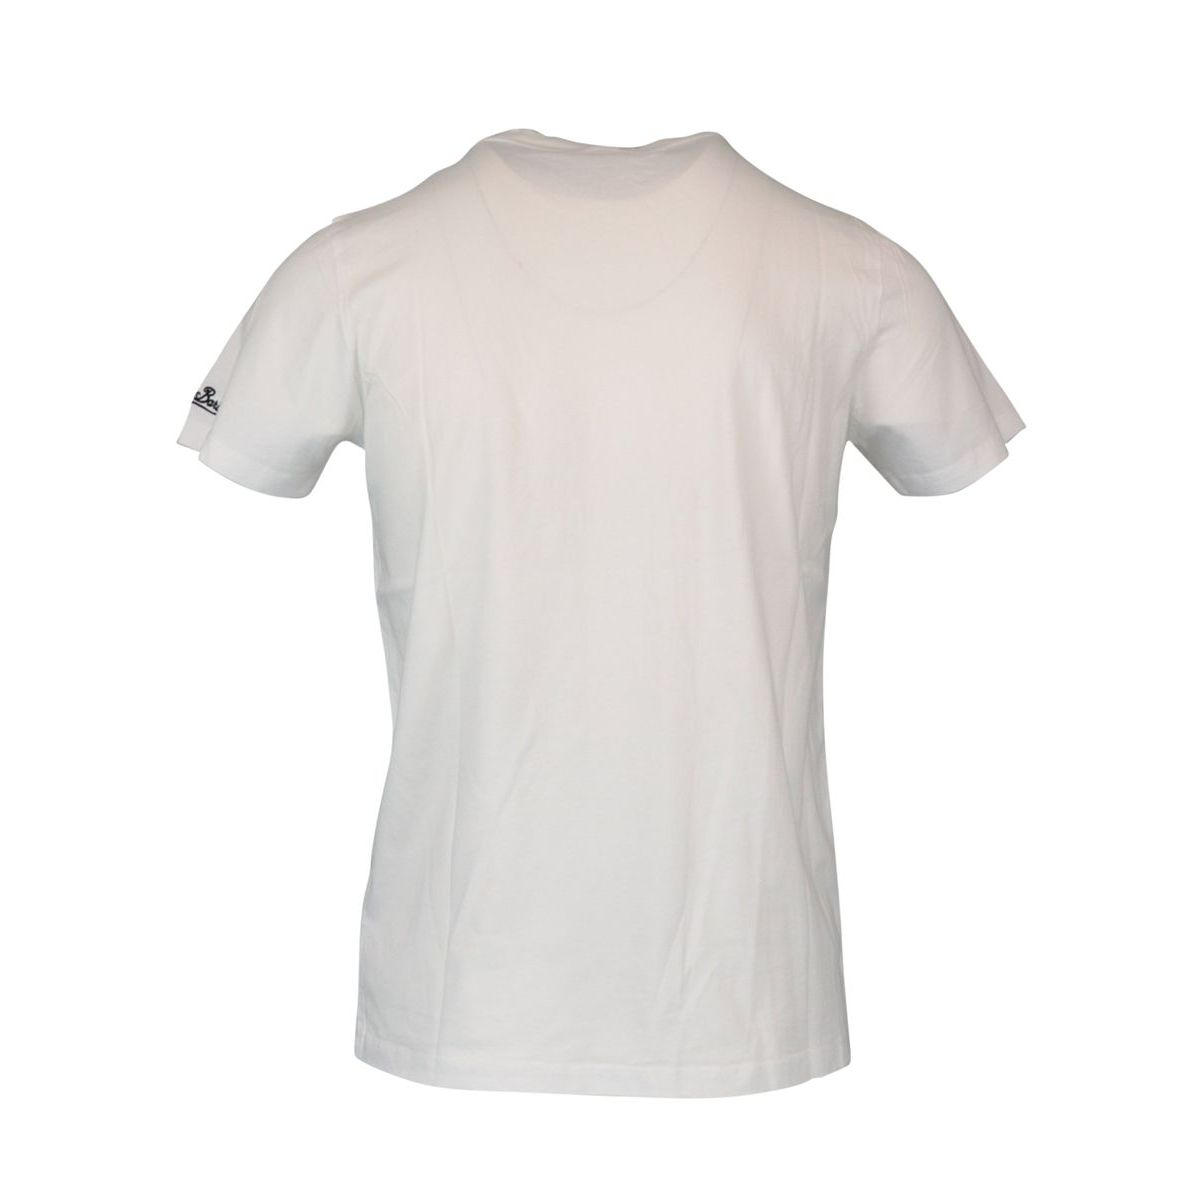 Cotton T-shirt with Lemon Vodka print White MC2 Saint Barth